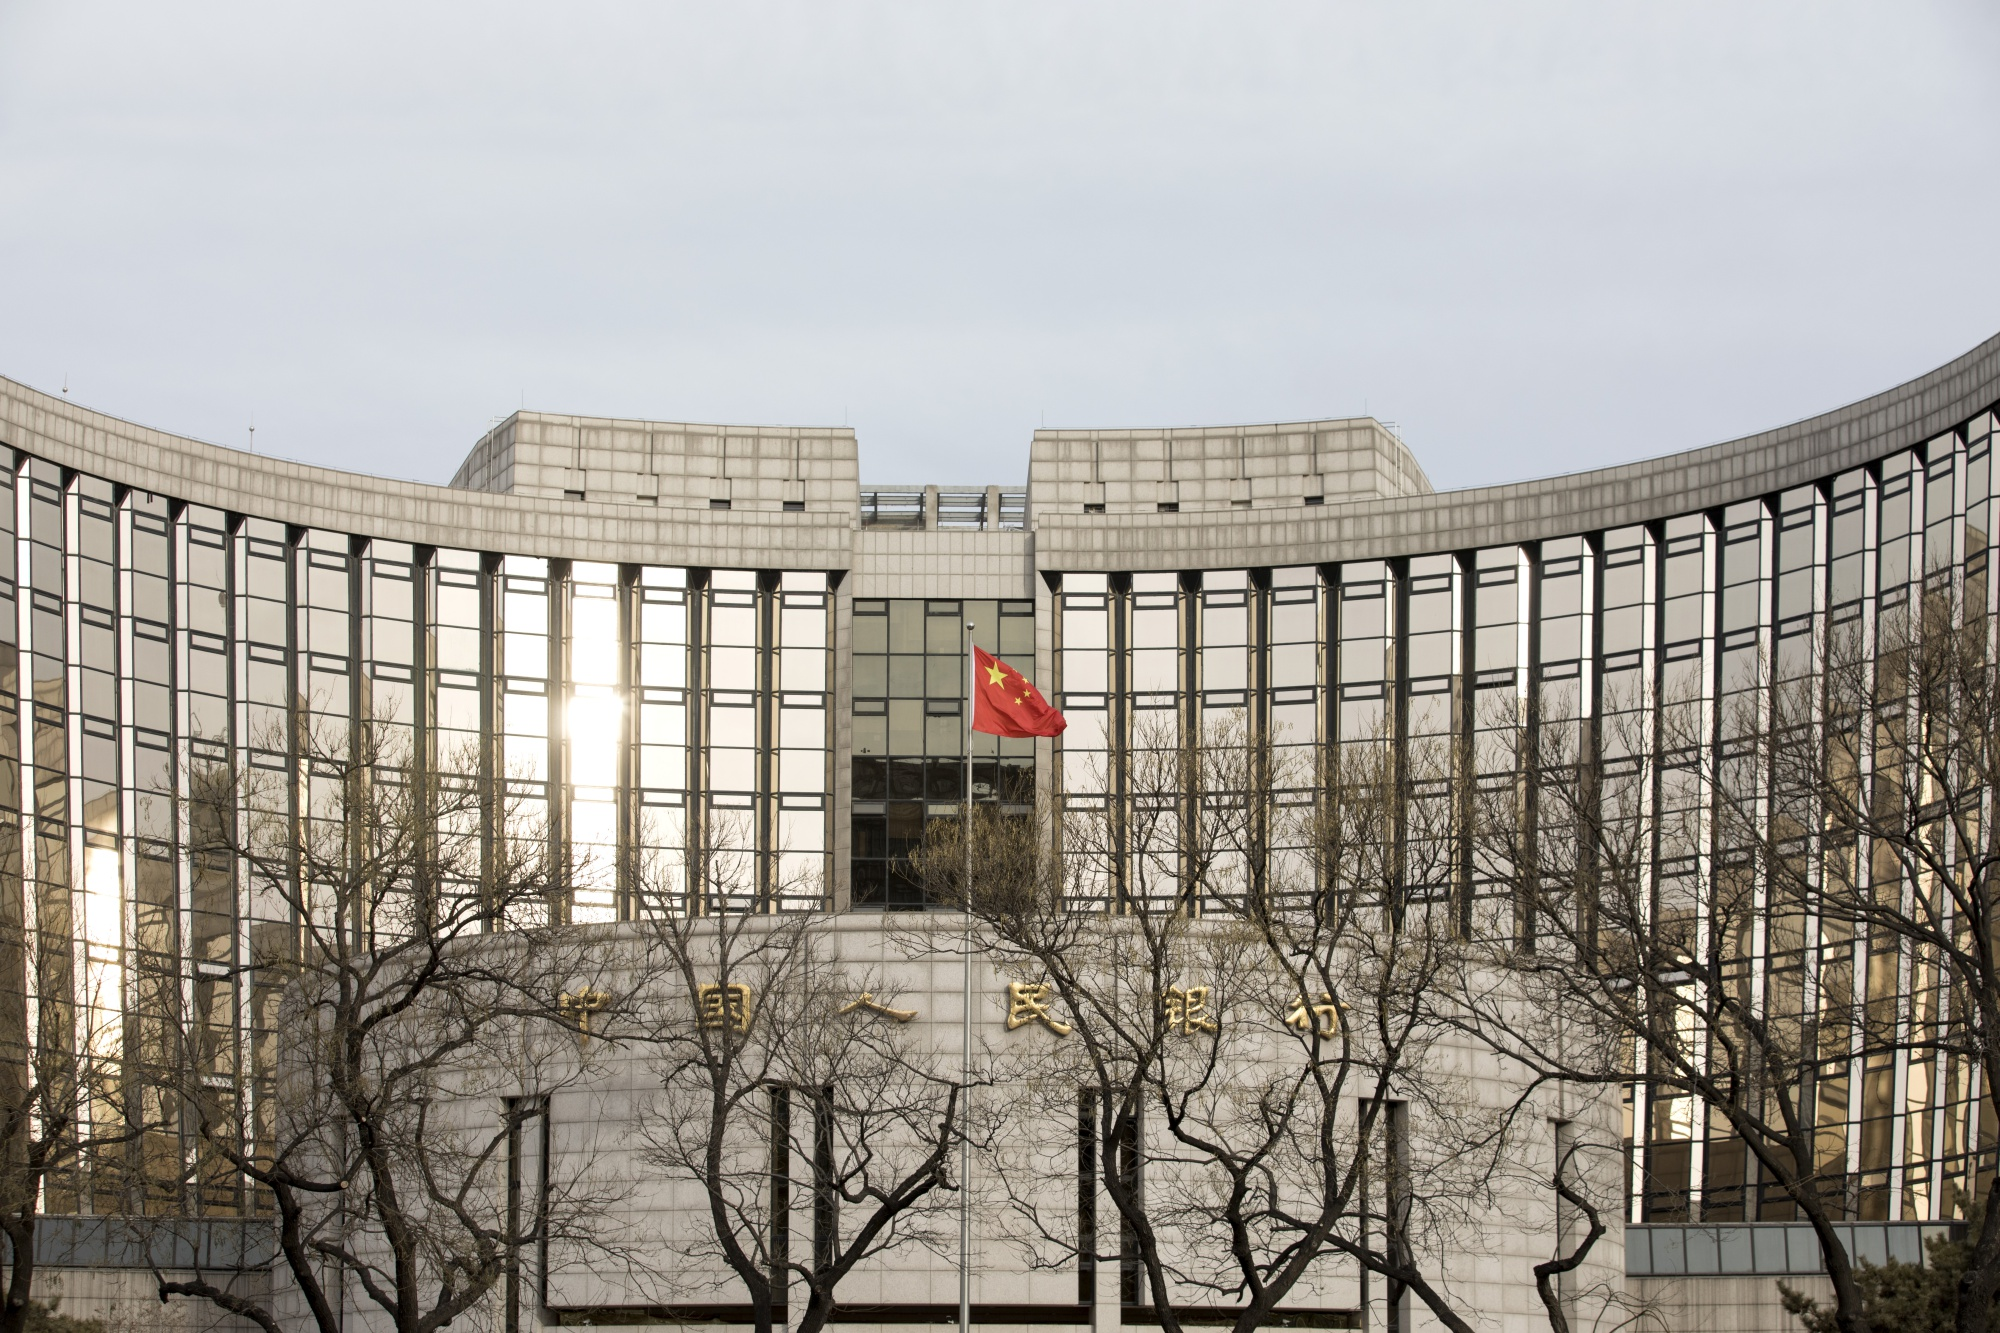 bloomberg.com - China Sovereign Bonds Go From Market Darling to Asia's Worst Bet